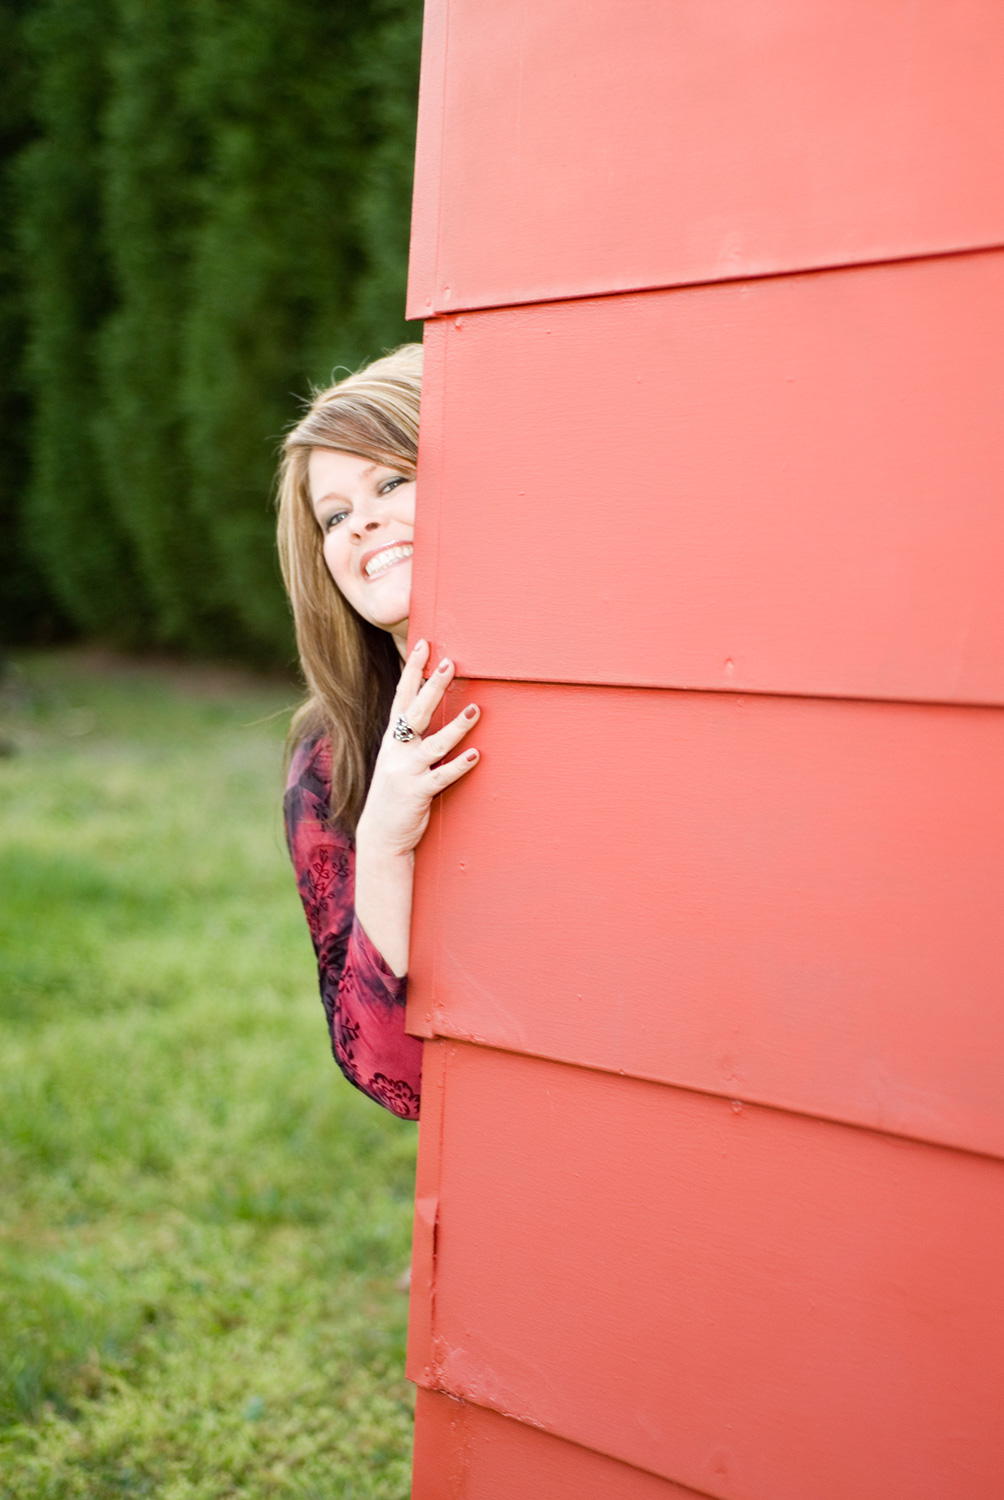 andrea-templon-north-carolina-vocalist-with-red-barn-wall-singer-for-hire-007.jpg